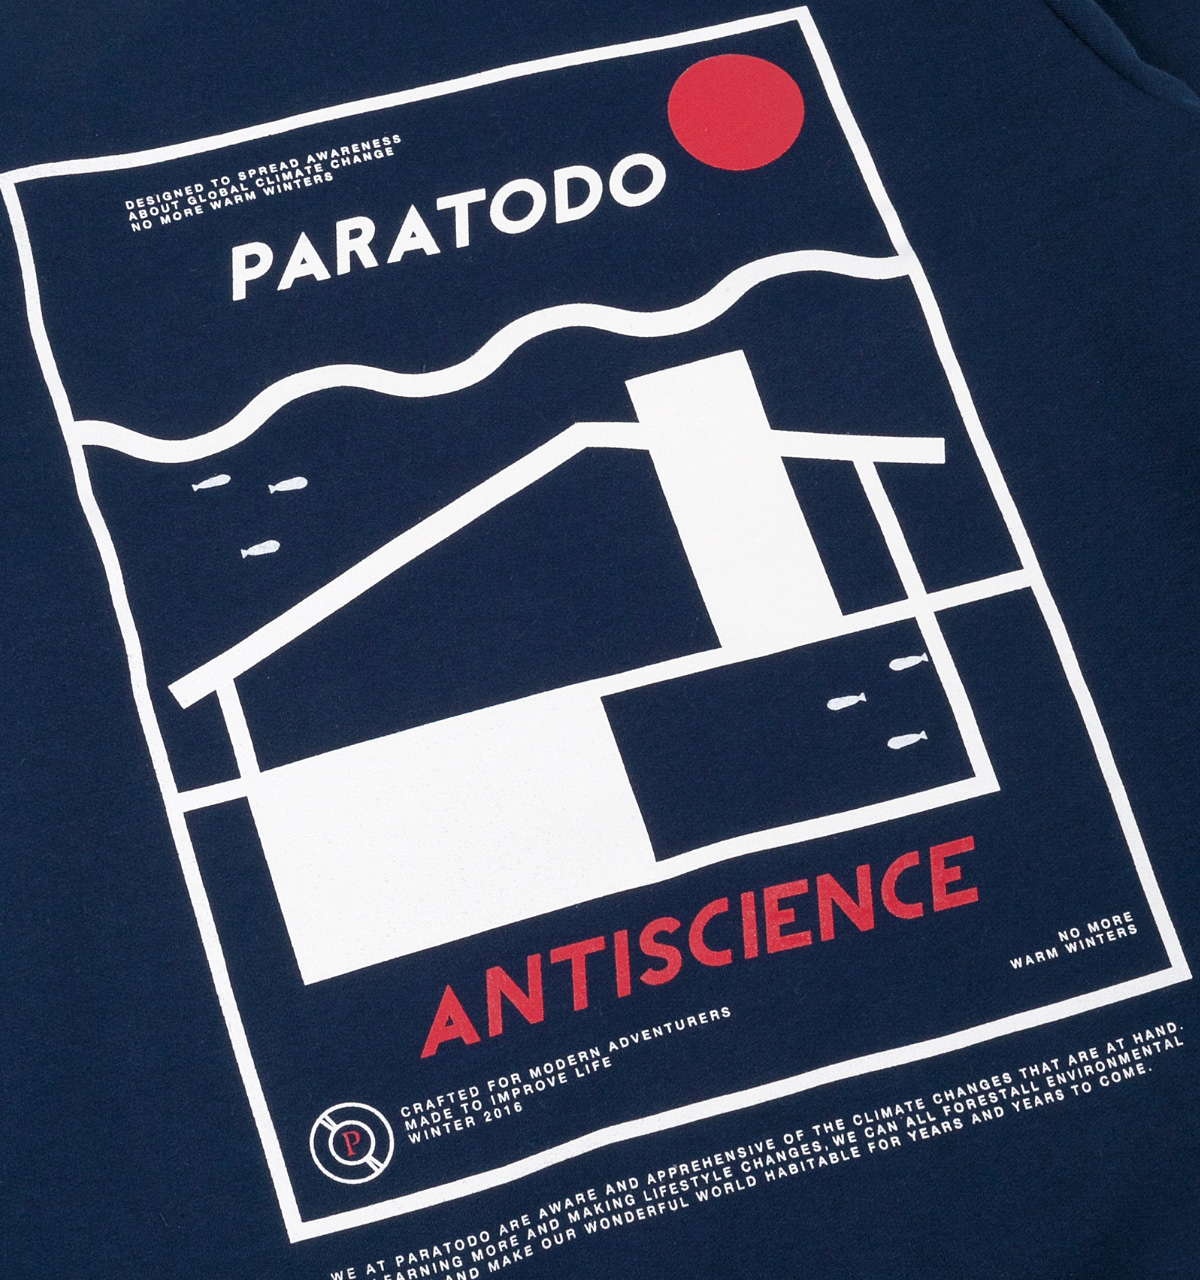 Paratodo Antiscience Sweatshirt, Navy